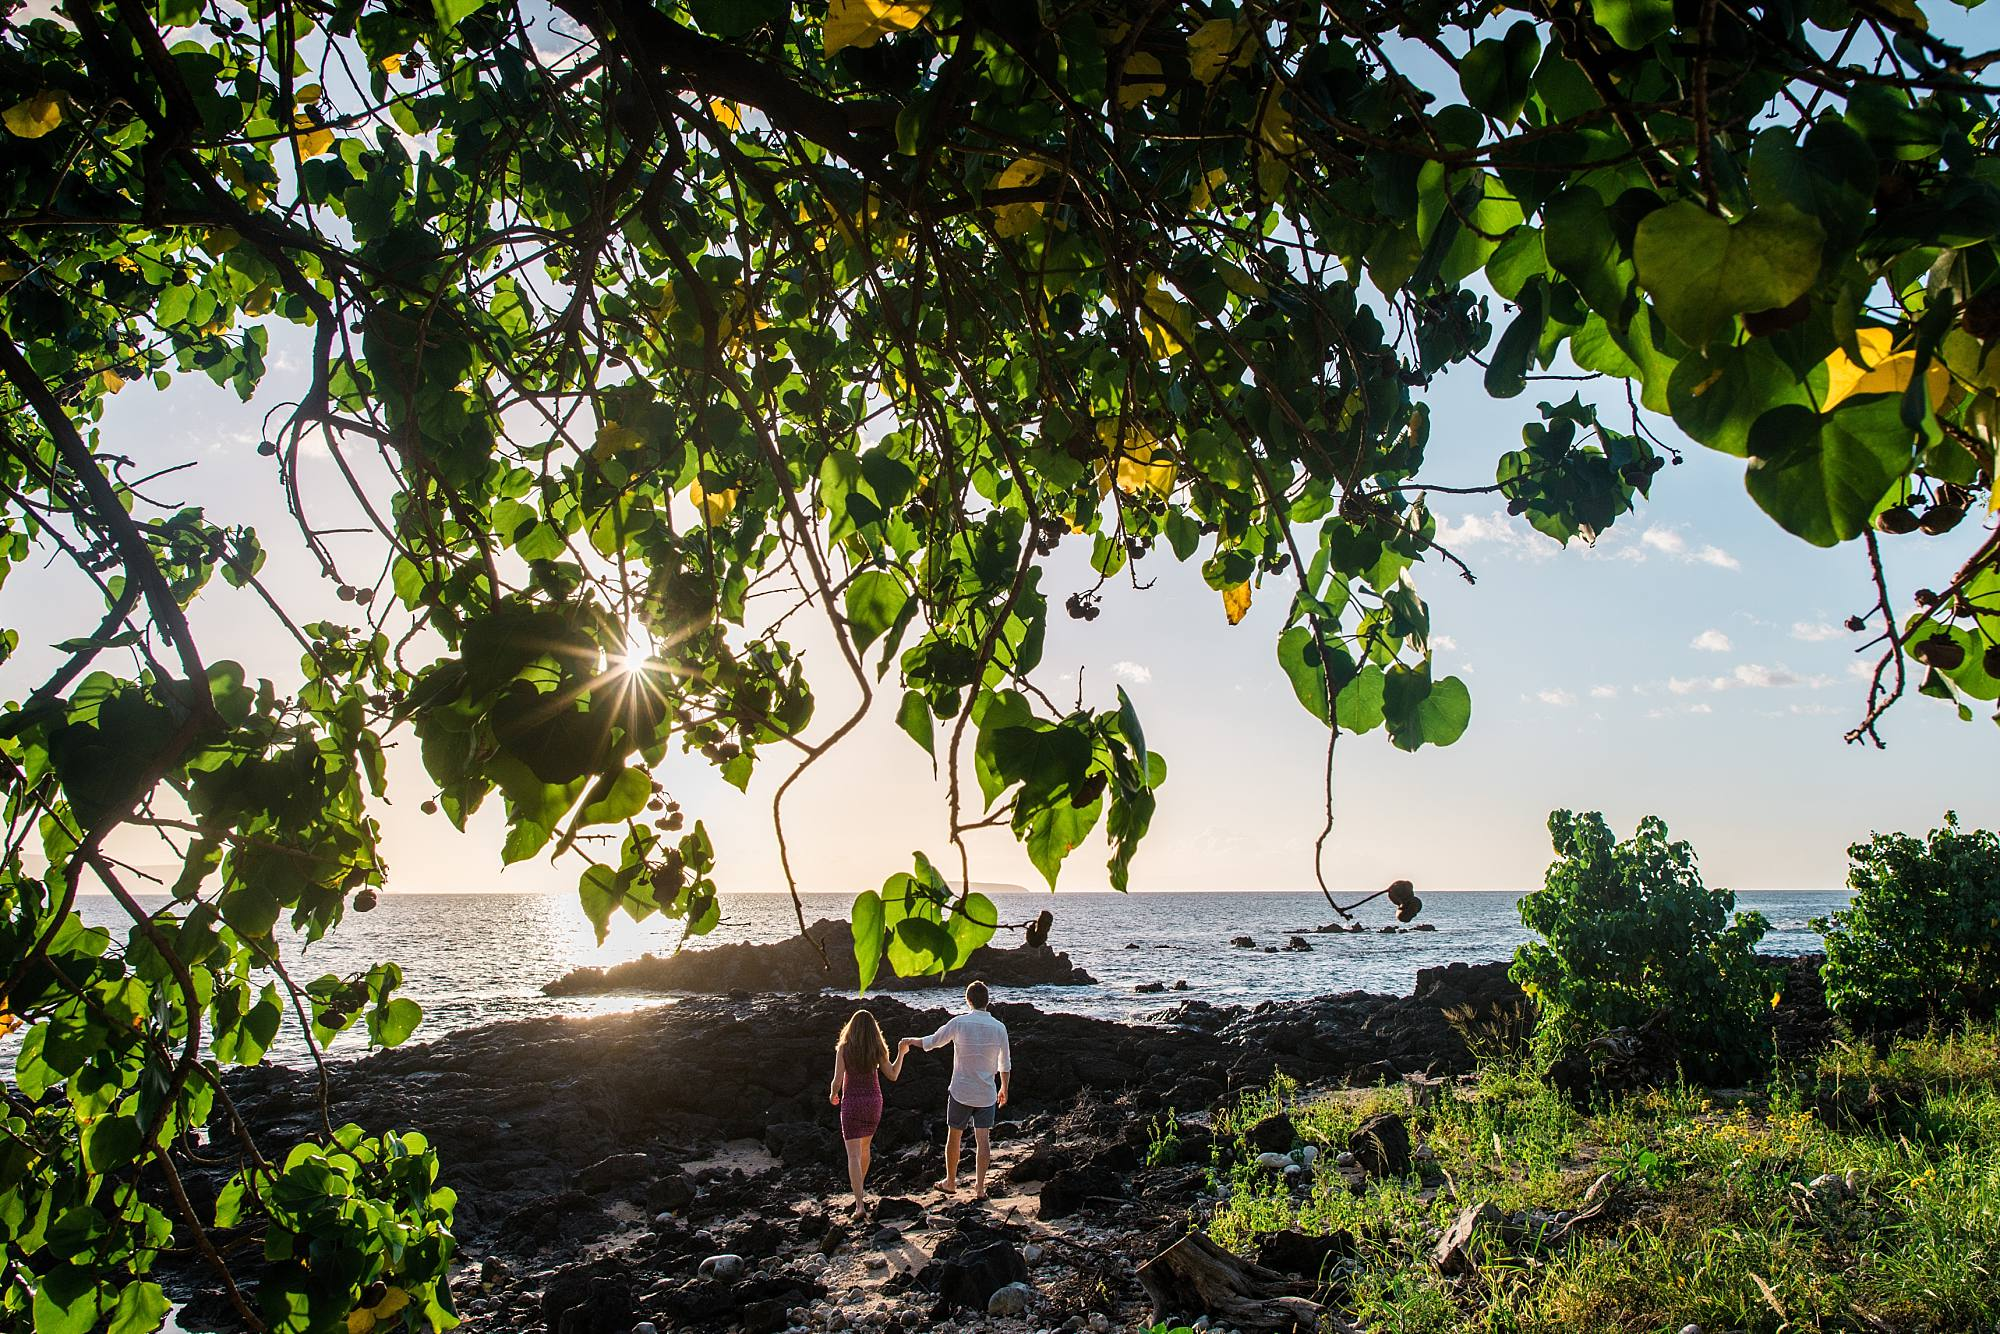 husband and wife on adventurous maternity shoot on Maui, traversing lava rocks to get just the right shot